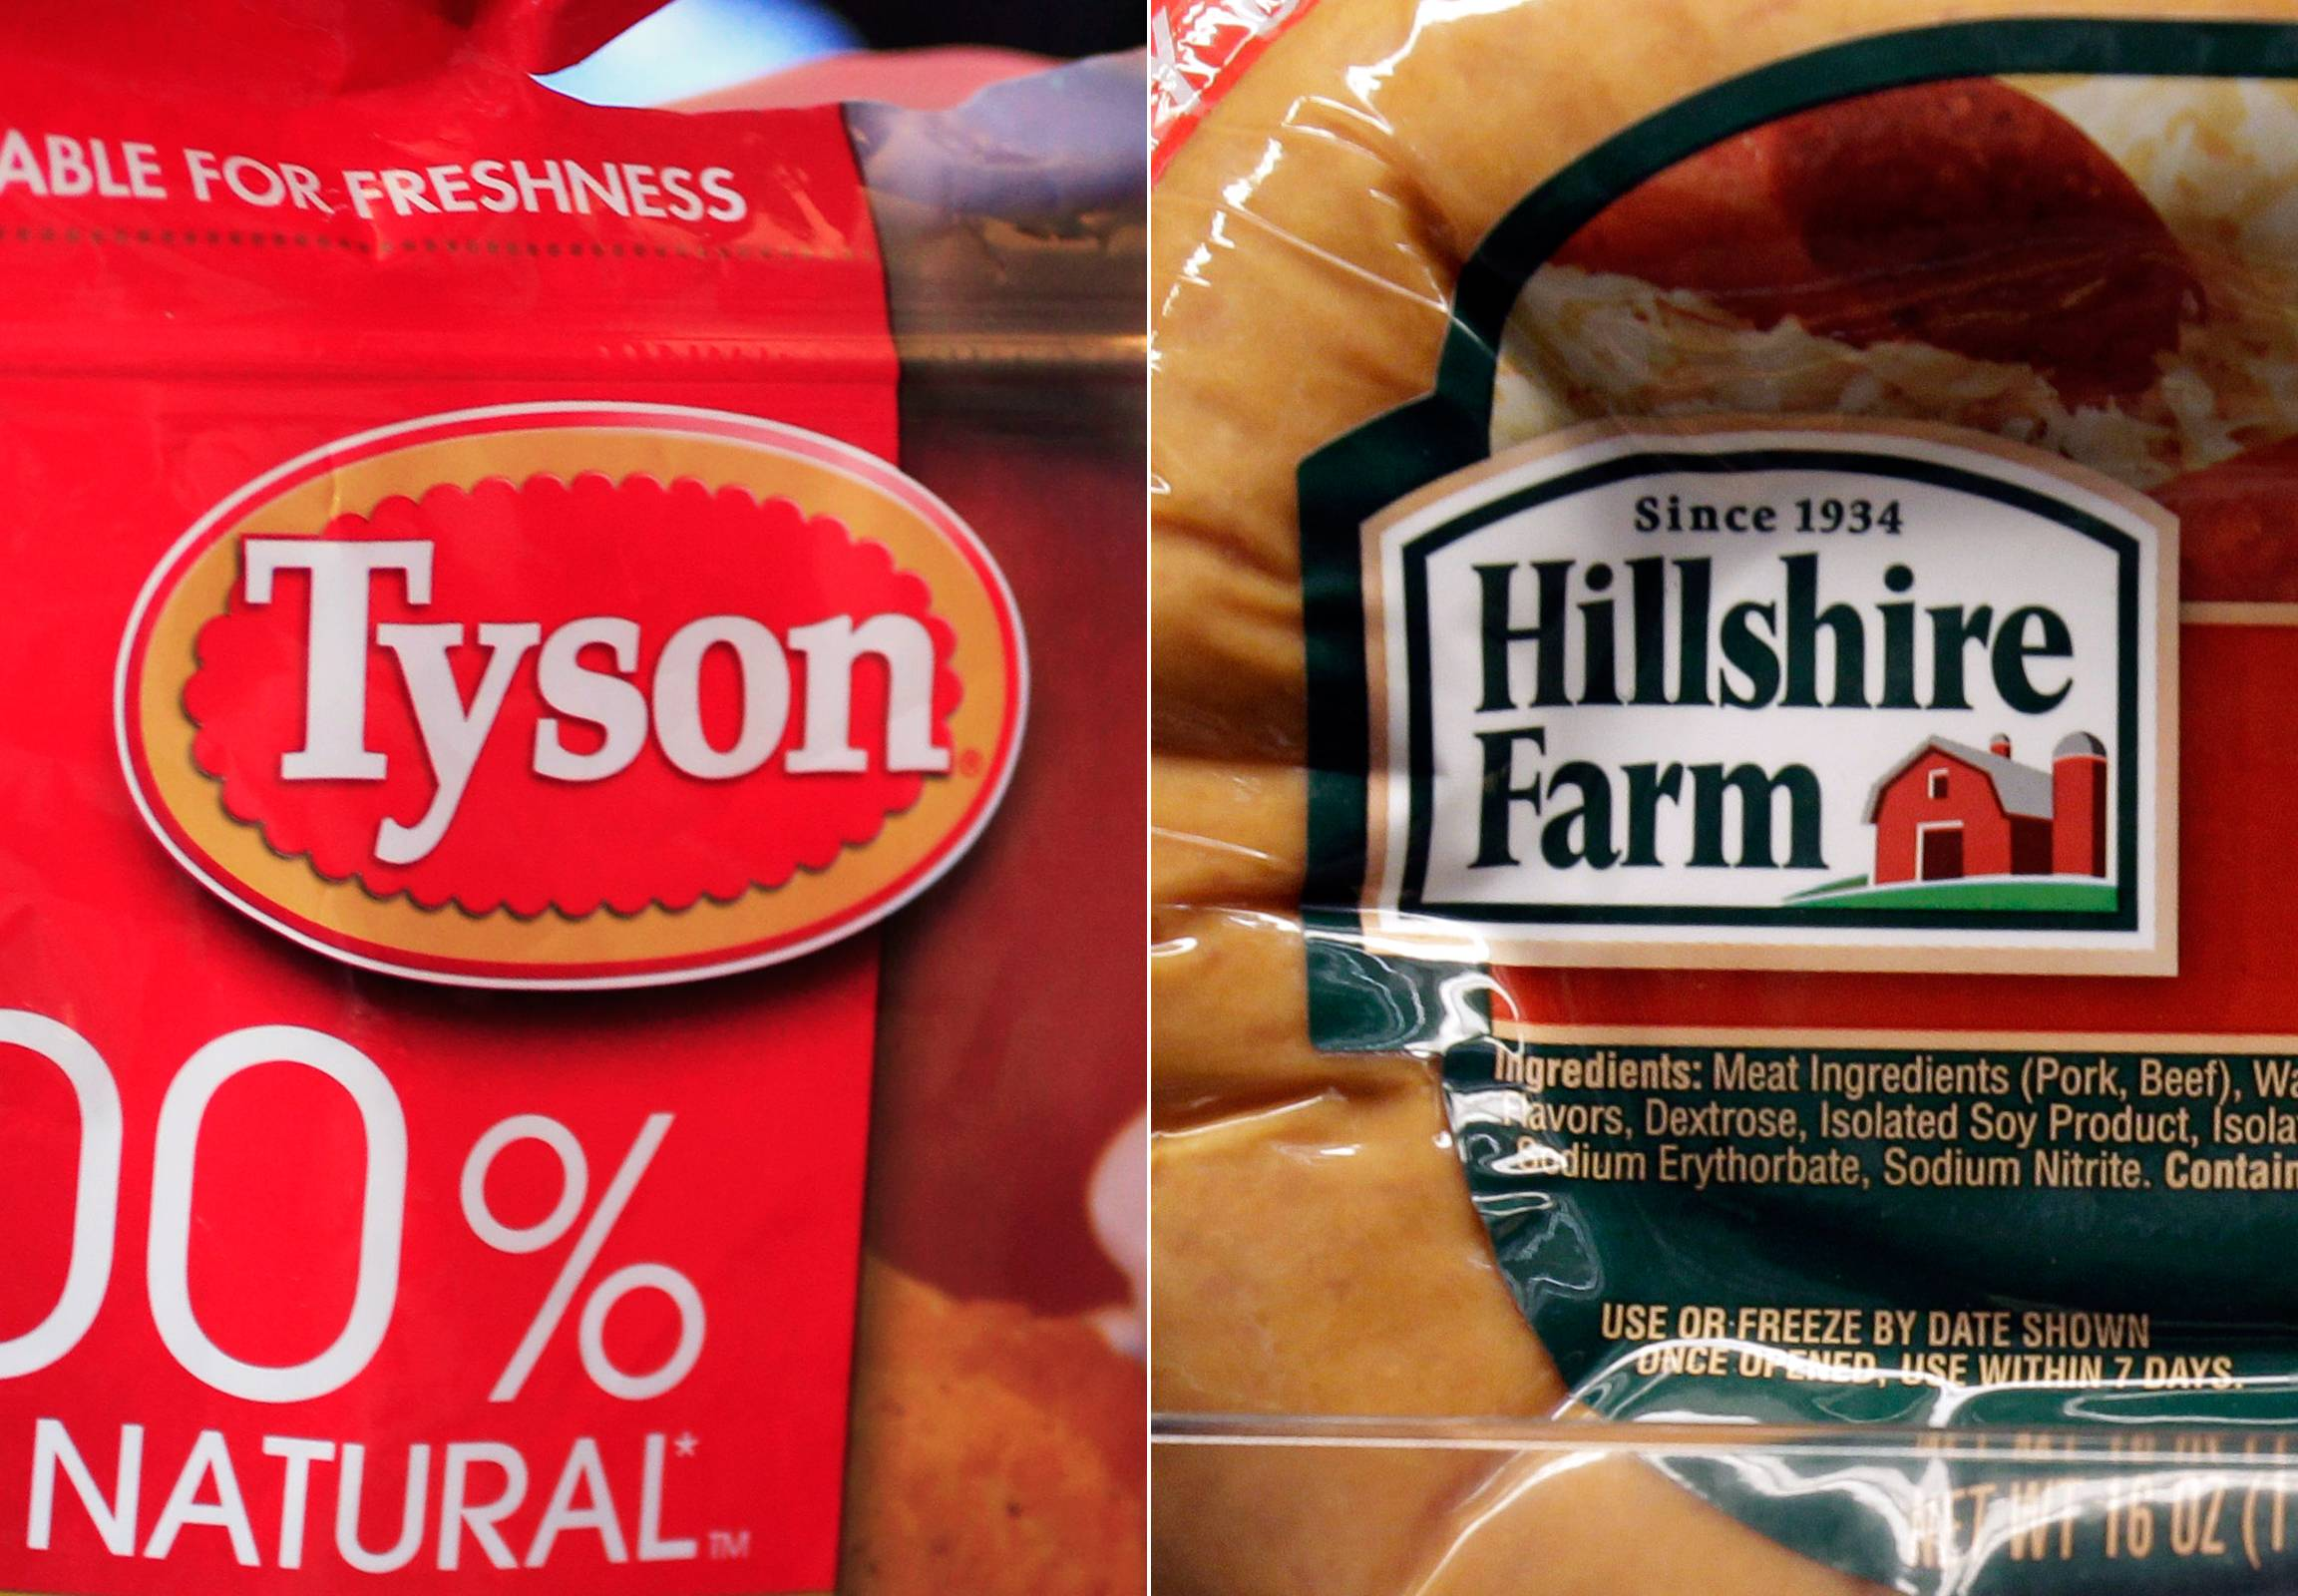 A package of frozen Tyson Chicken Nuggets, left, and a package of Hillshire Farm sausage. Two days after poultry producer Pilgrim's Pride made a $5.58 billion dollar bid for the maker of Ball Park hot dogs and Jimmy Dean sausages, Tyson Foods Co. Thursday sweetened the pot with a $6.2 billion offer.